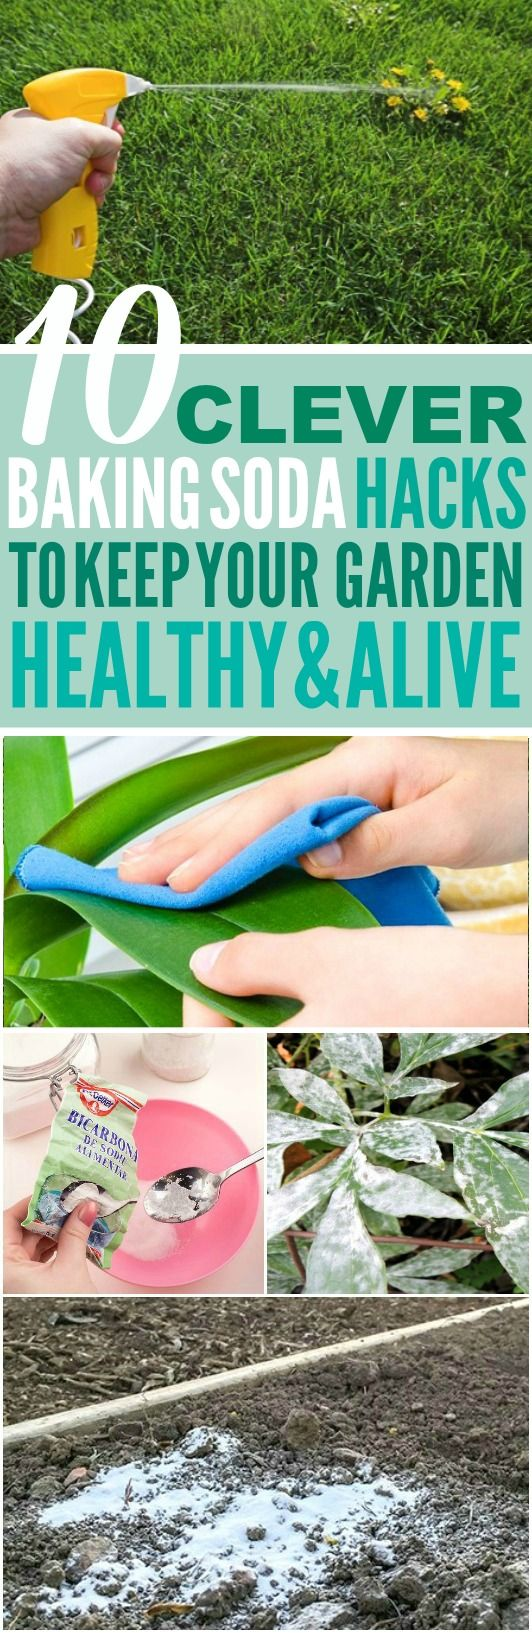 These 10 ways to use baking soda in the garden are THE BEST! I'm so happy I found these AMAZING tips! Now I have some great ways to use baking soda in my garden and keep my garden healthy and alive! Definitely pinning!